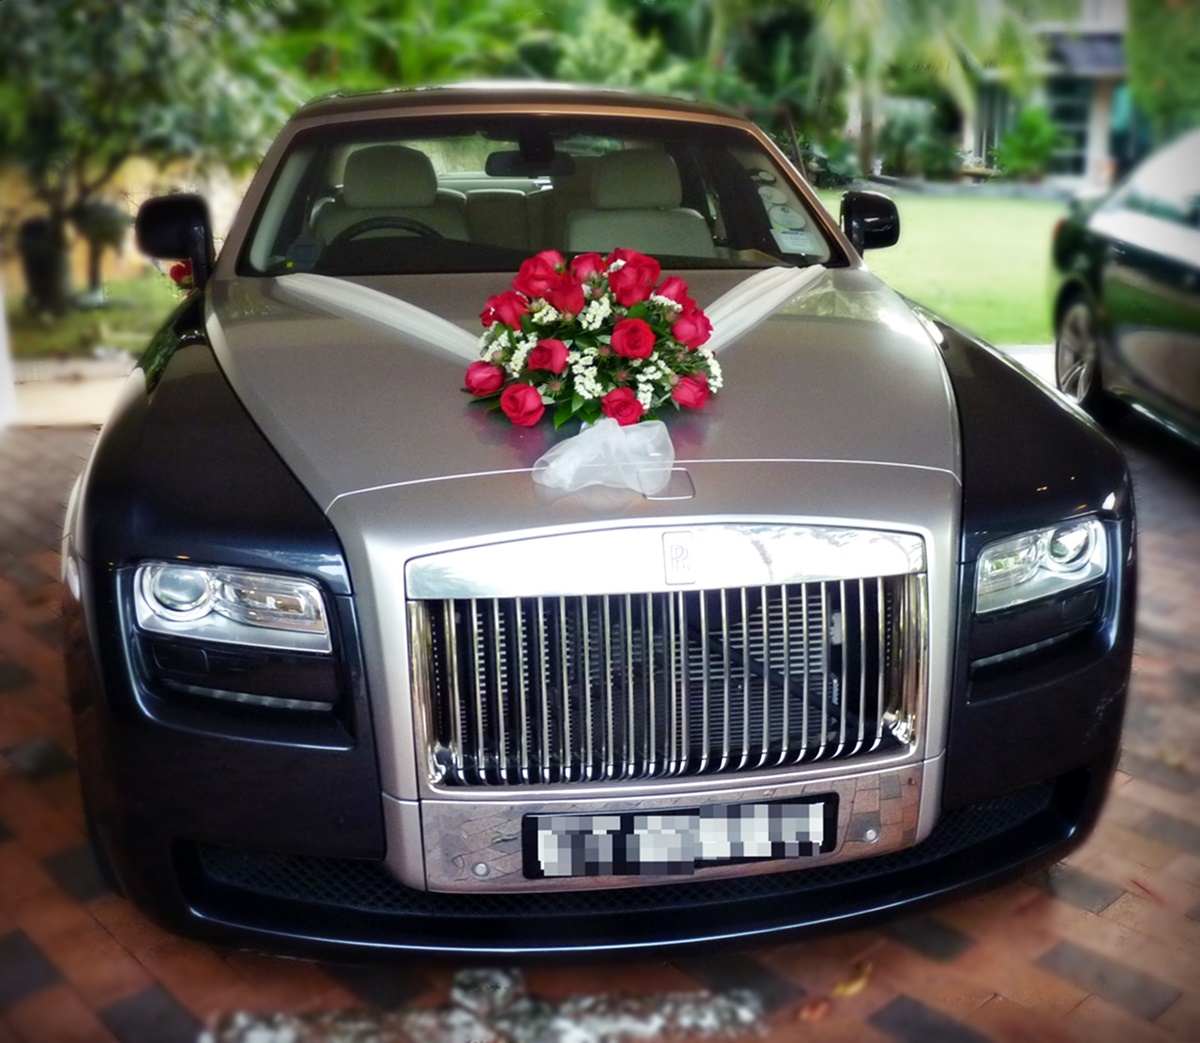 Bridal Car Decoration Flower Decoration Car Hd Images